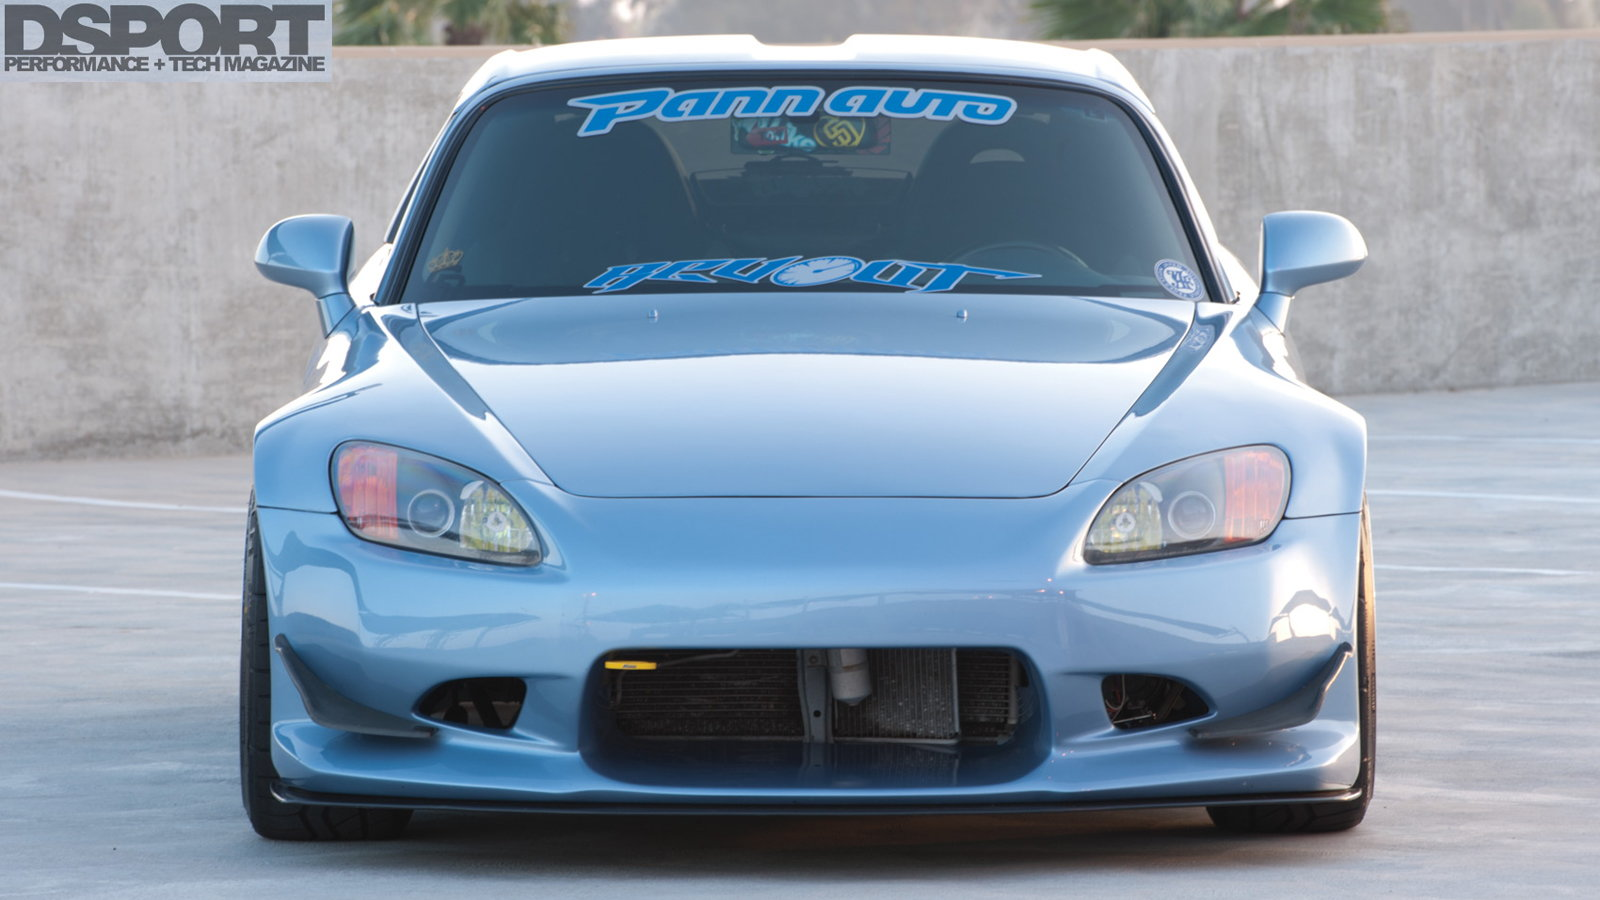 S2000 Enjoys 400 Supercharged Horses